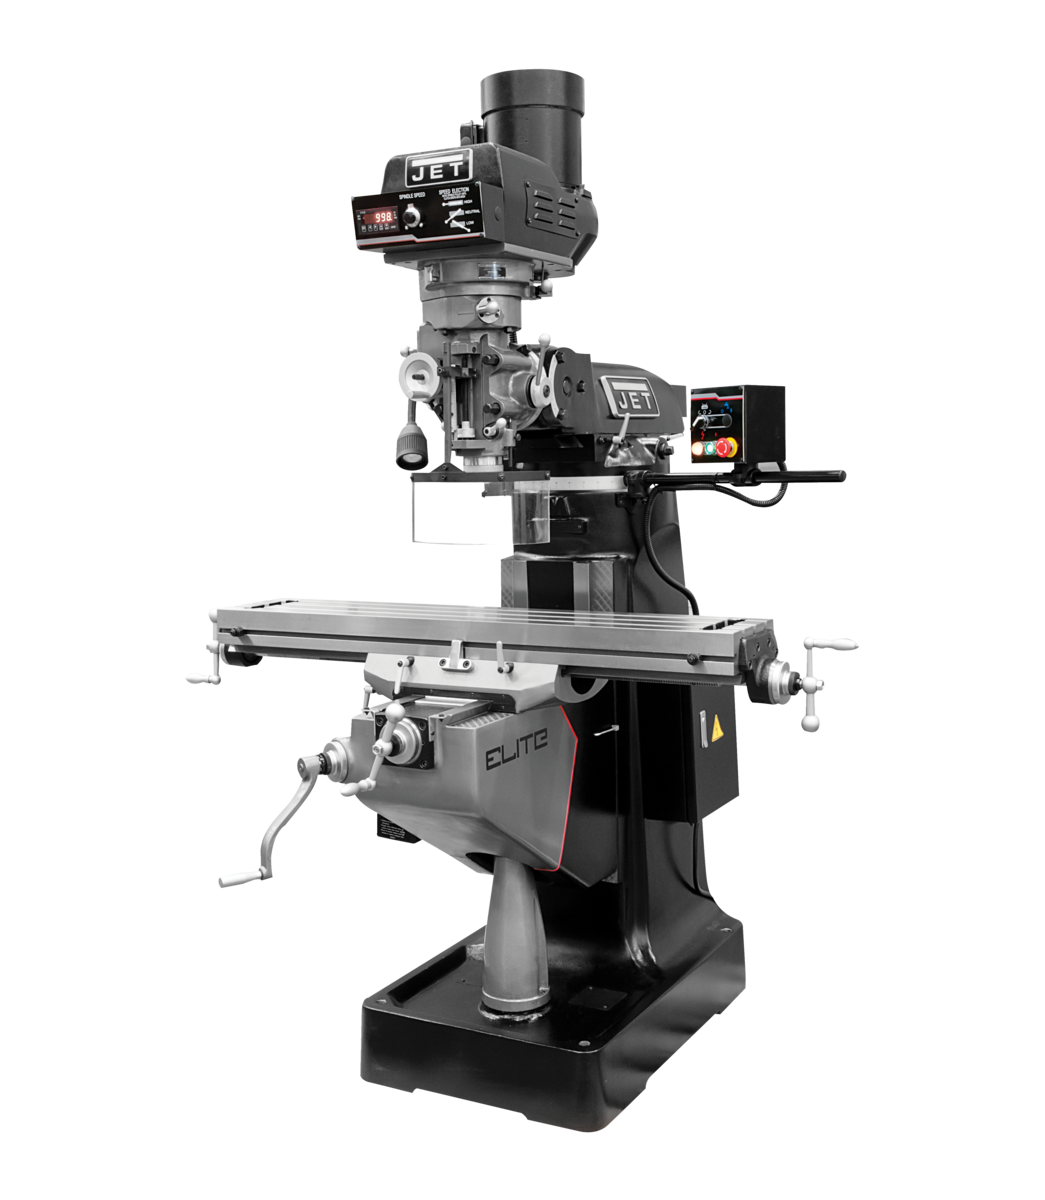 EVS-949 Mill with 2-Axis Newall DP700 DRO